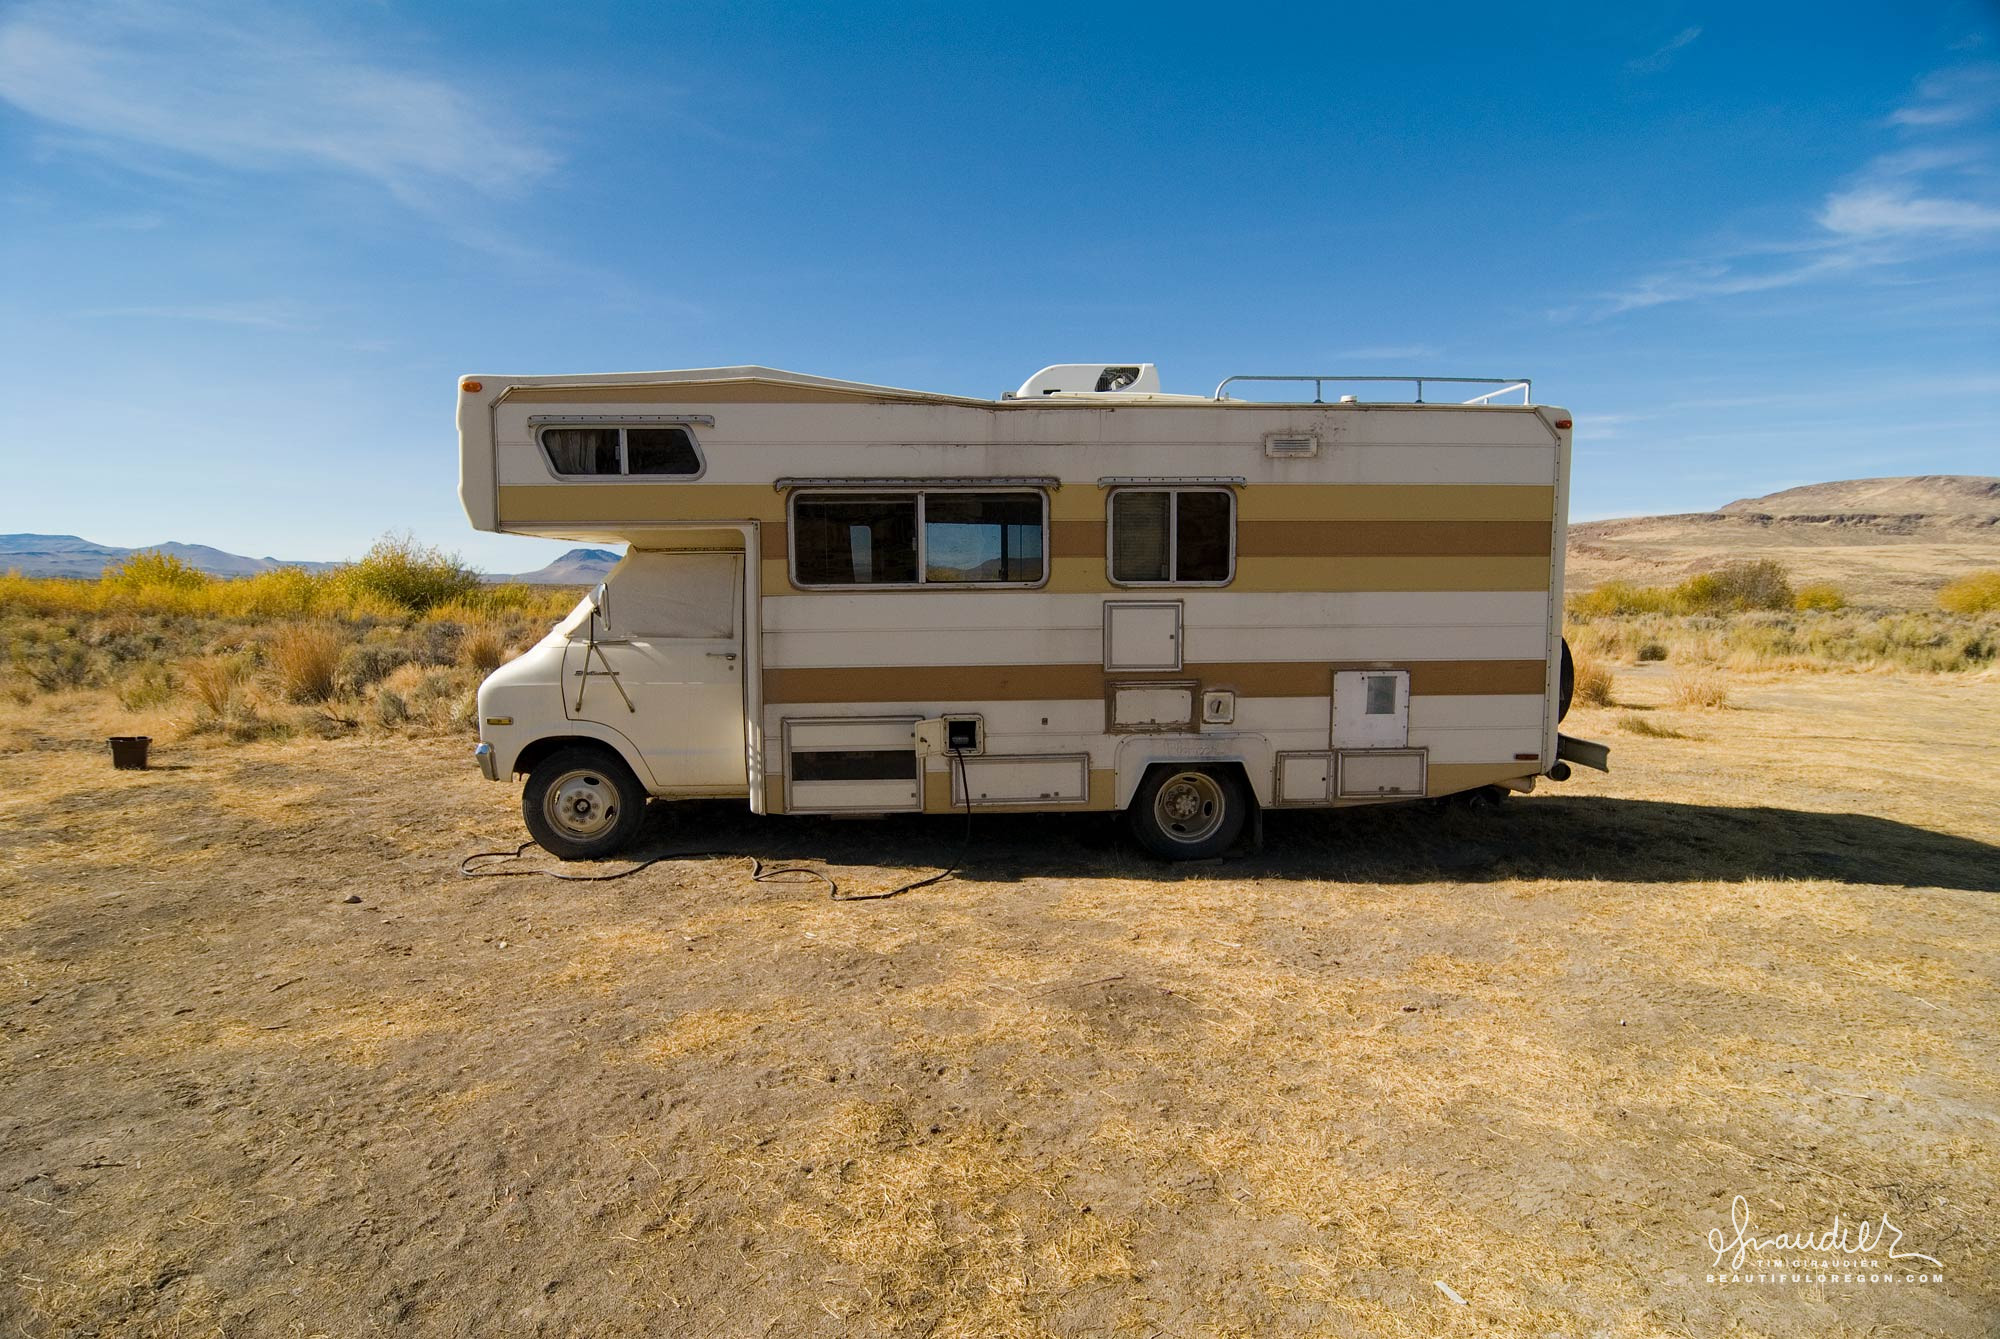 An old school RV camper enjoys the easy life of free camping in the vastness of public lands in Harney County, Eastern Oregon.